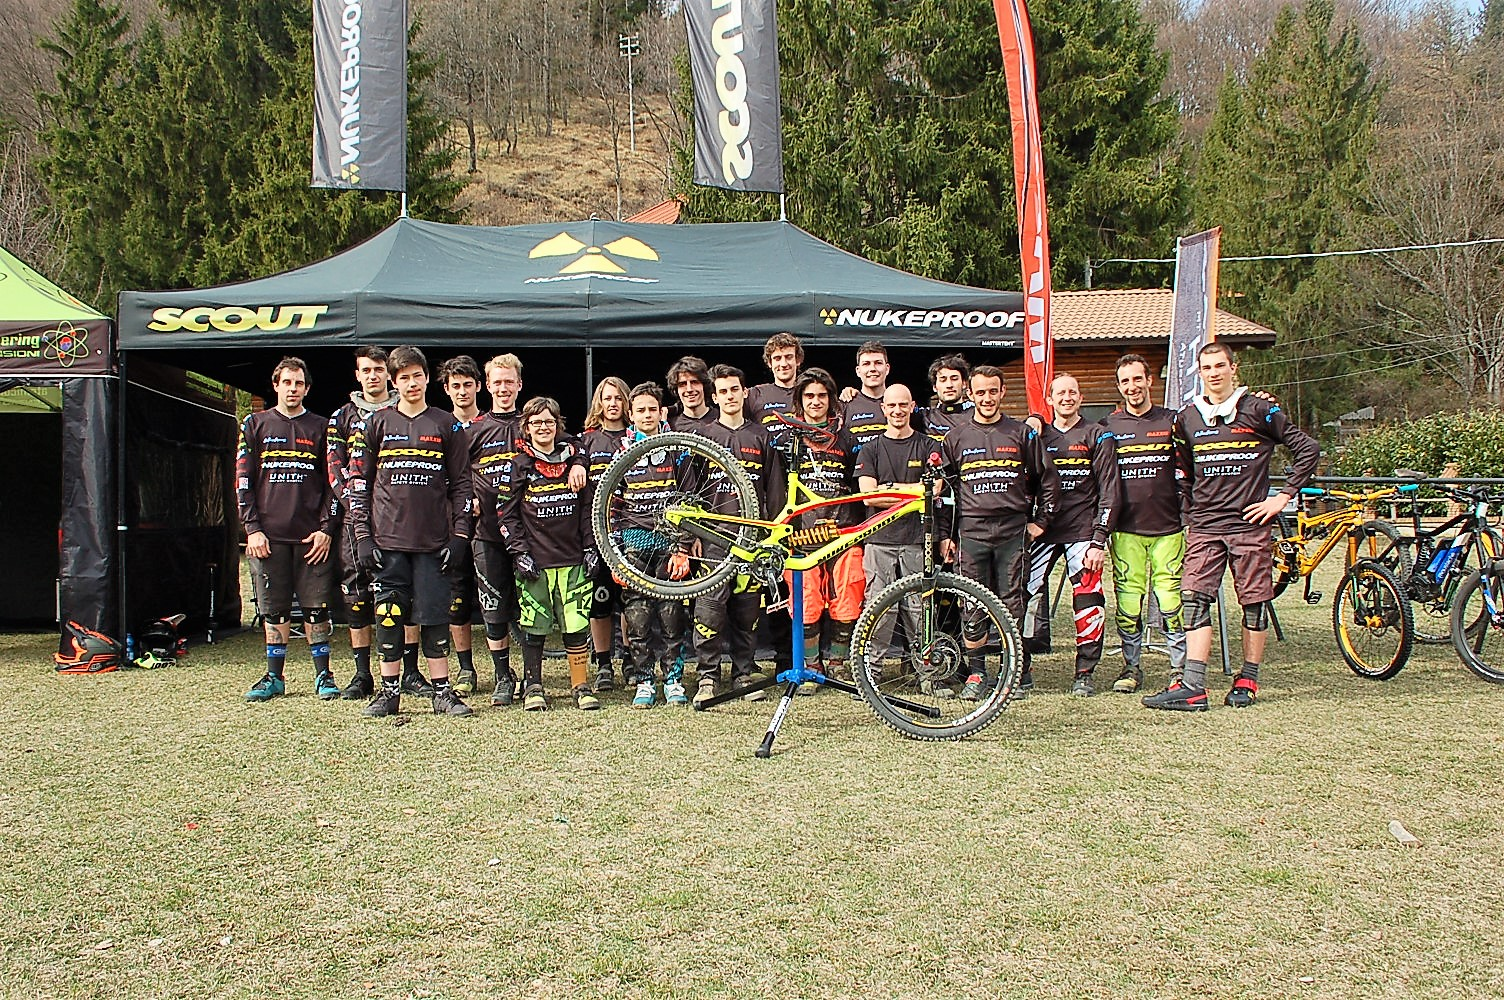 TEAM SCOUT NUKEPROOF